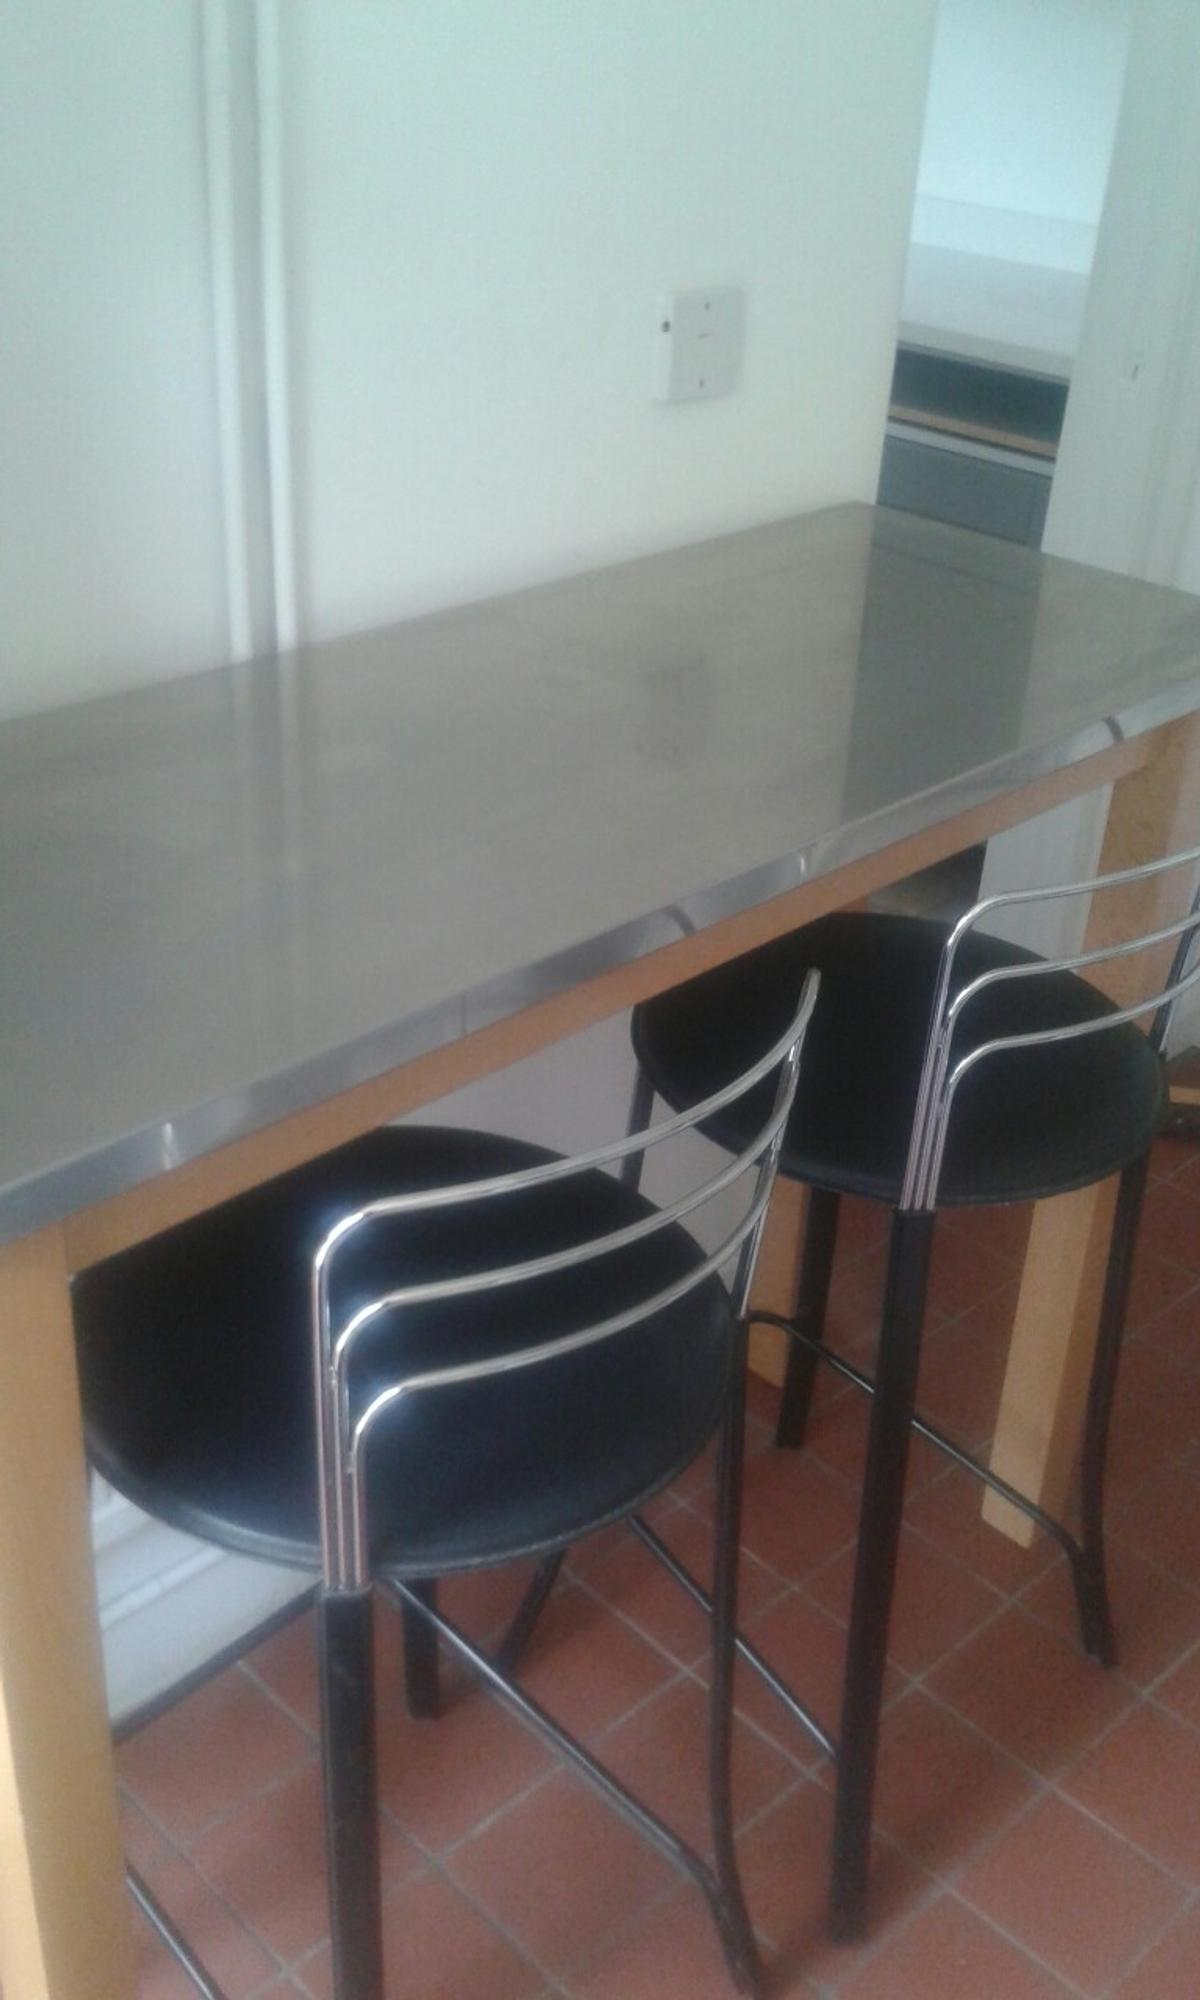 Picture of: Breakfast Bar And Stools In Lu2 Luton For 25 00 For Sale Shpock